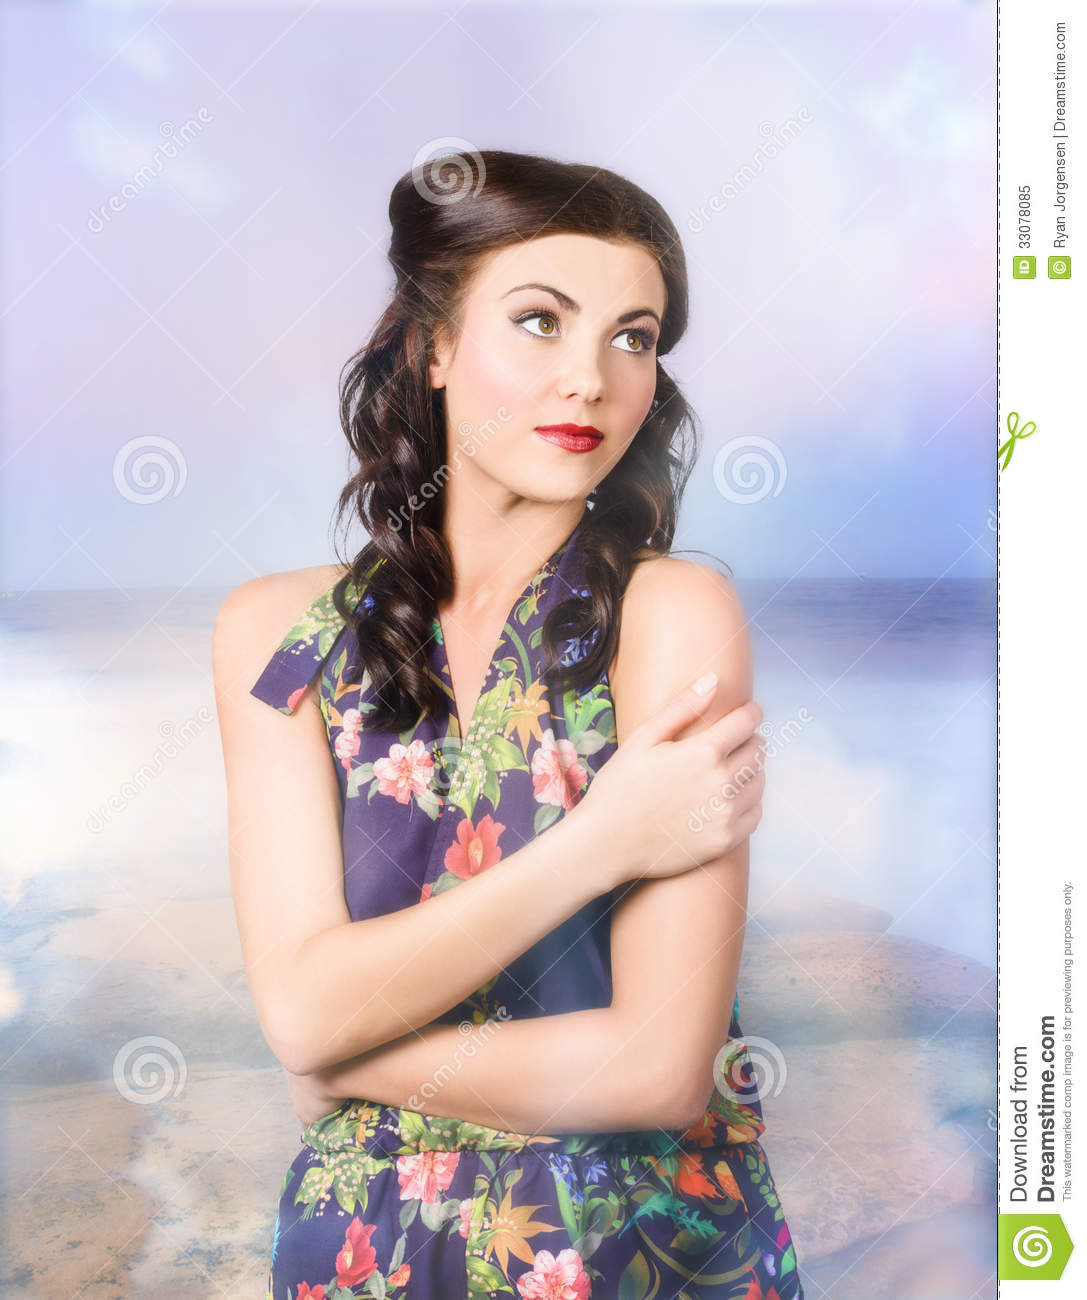 Stylish Vogue Model In The Great Outdoors Stock Image